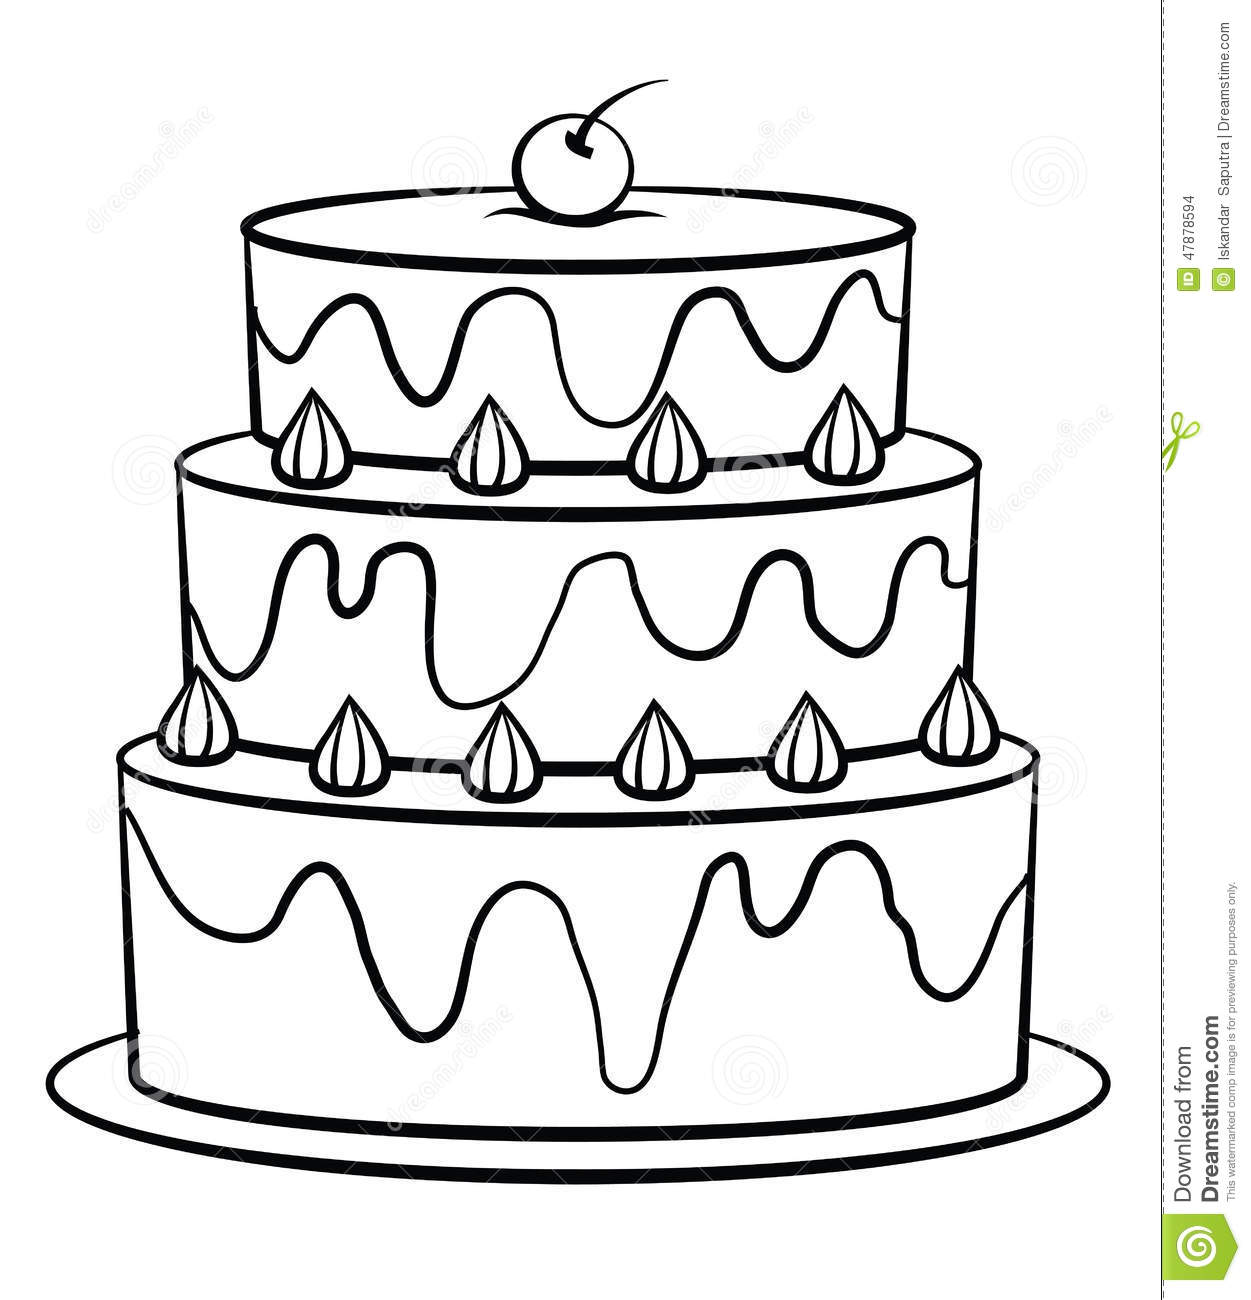 Birthday Cake Stock Vector Illustration Of Birthday 47878594